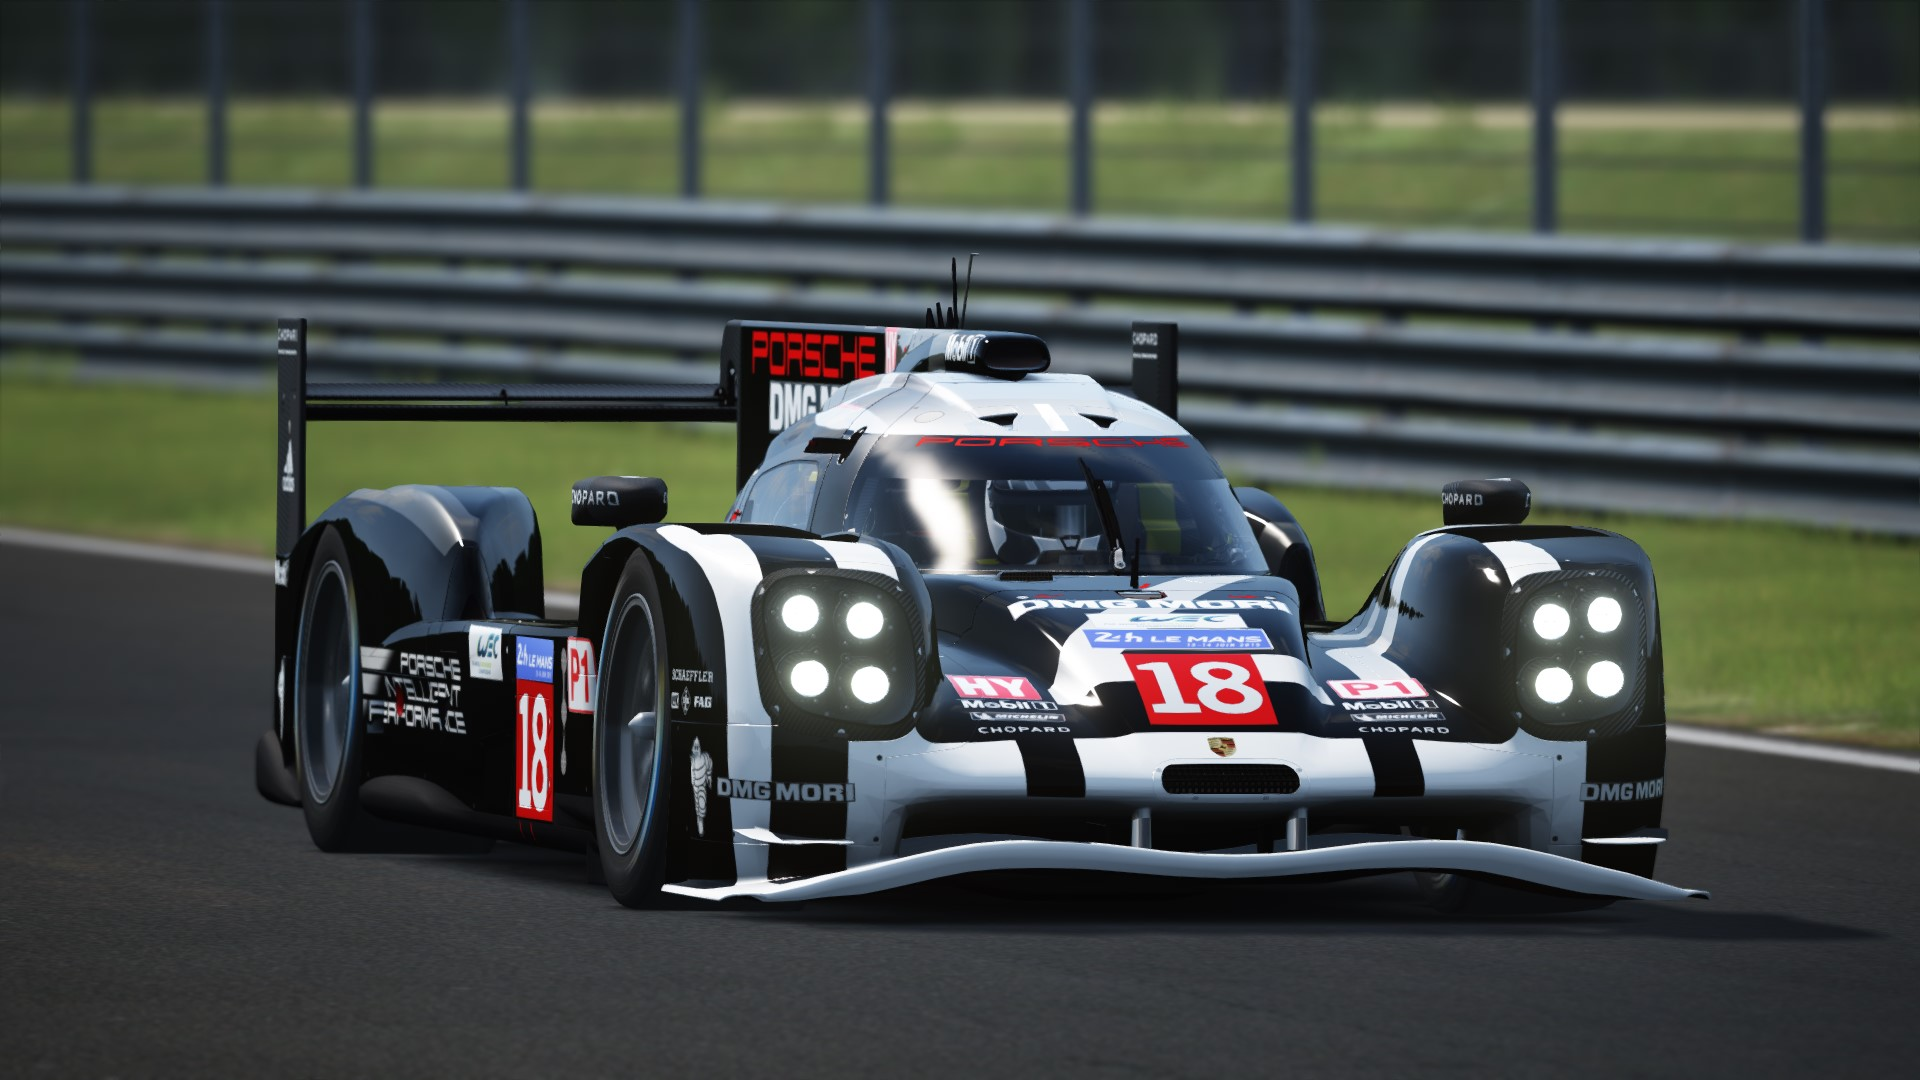 Screenshot_ks_porsche_919_hybrid_2015_monza_4-12-116-1-52-29.jpg